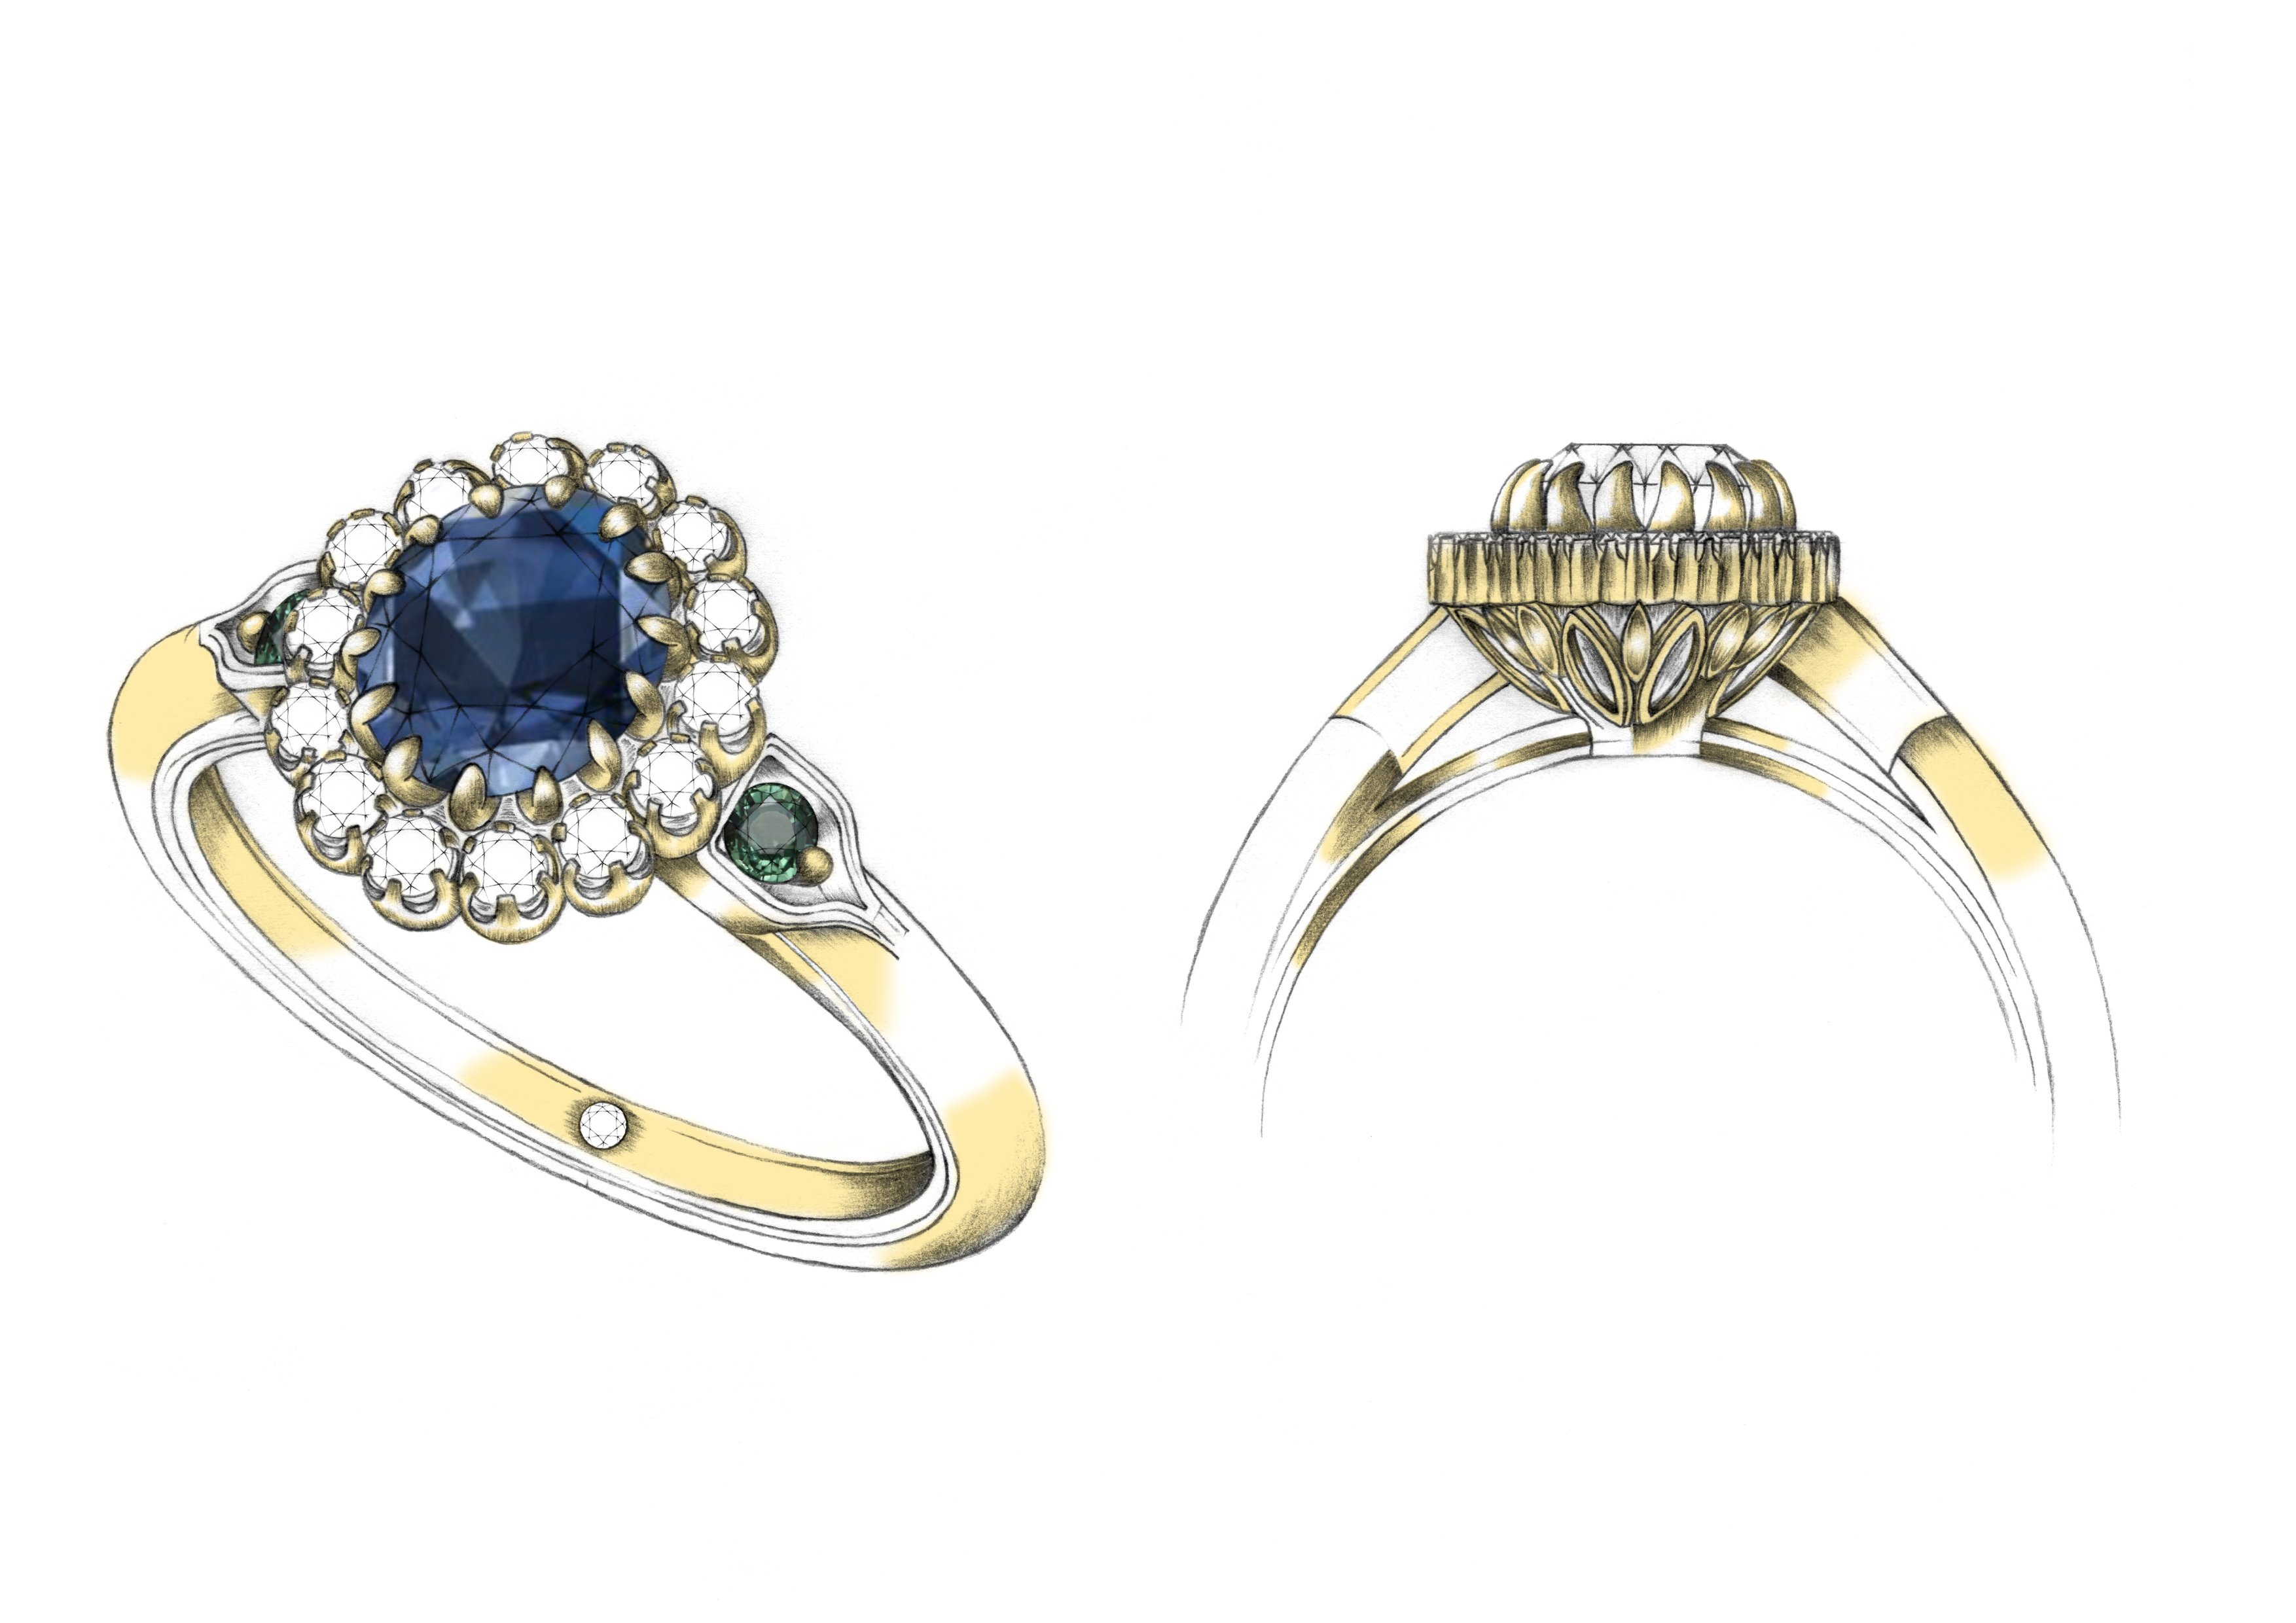 taylor-and-hart-bespoke-engagement-rings